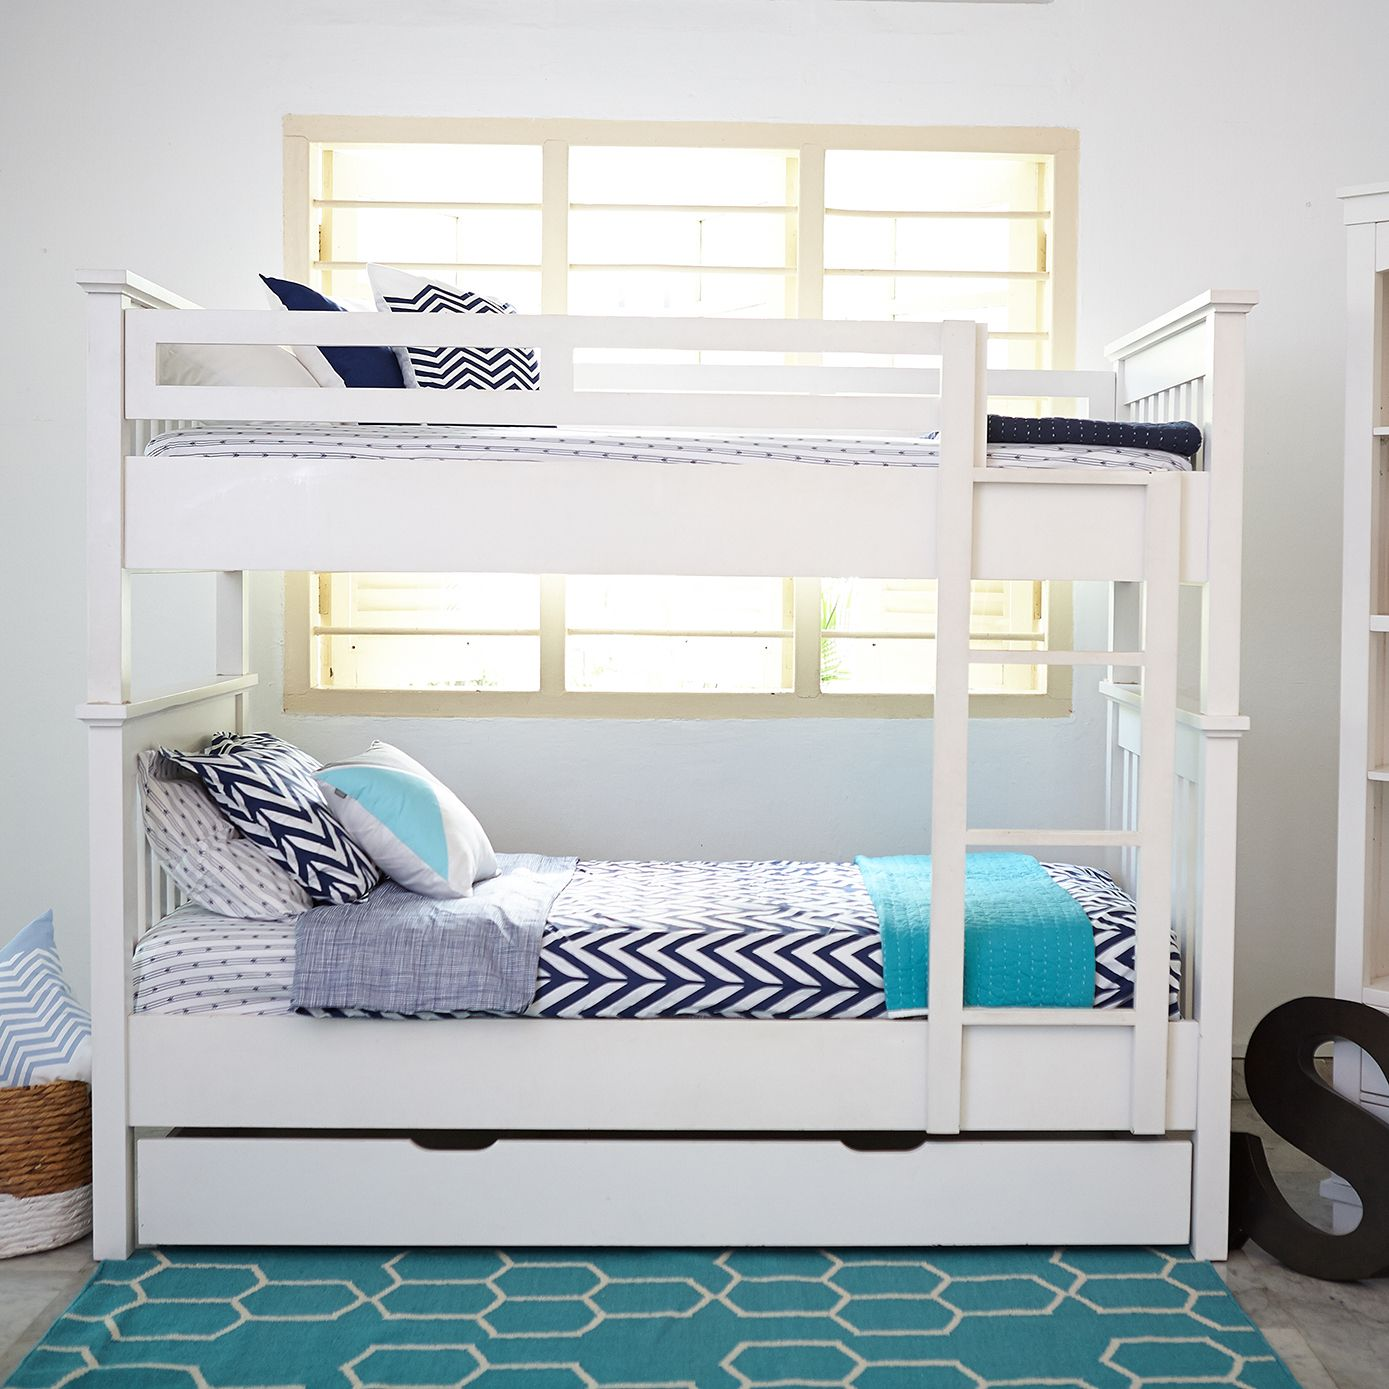 Double deck bedroom for kids girls - Kids Double Decker Bed For Sale Ni Night Offering Best Deals On Children Bunk